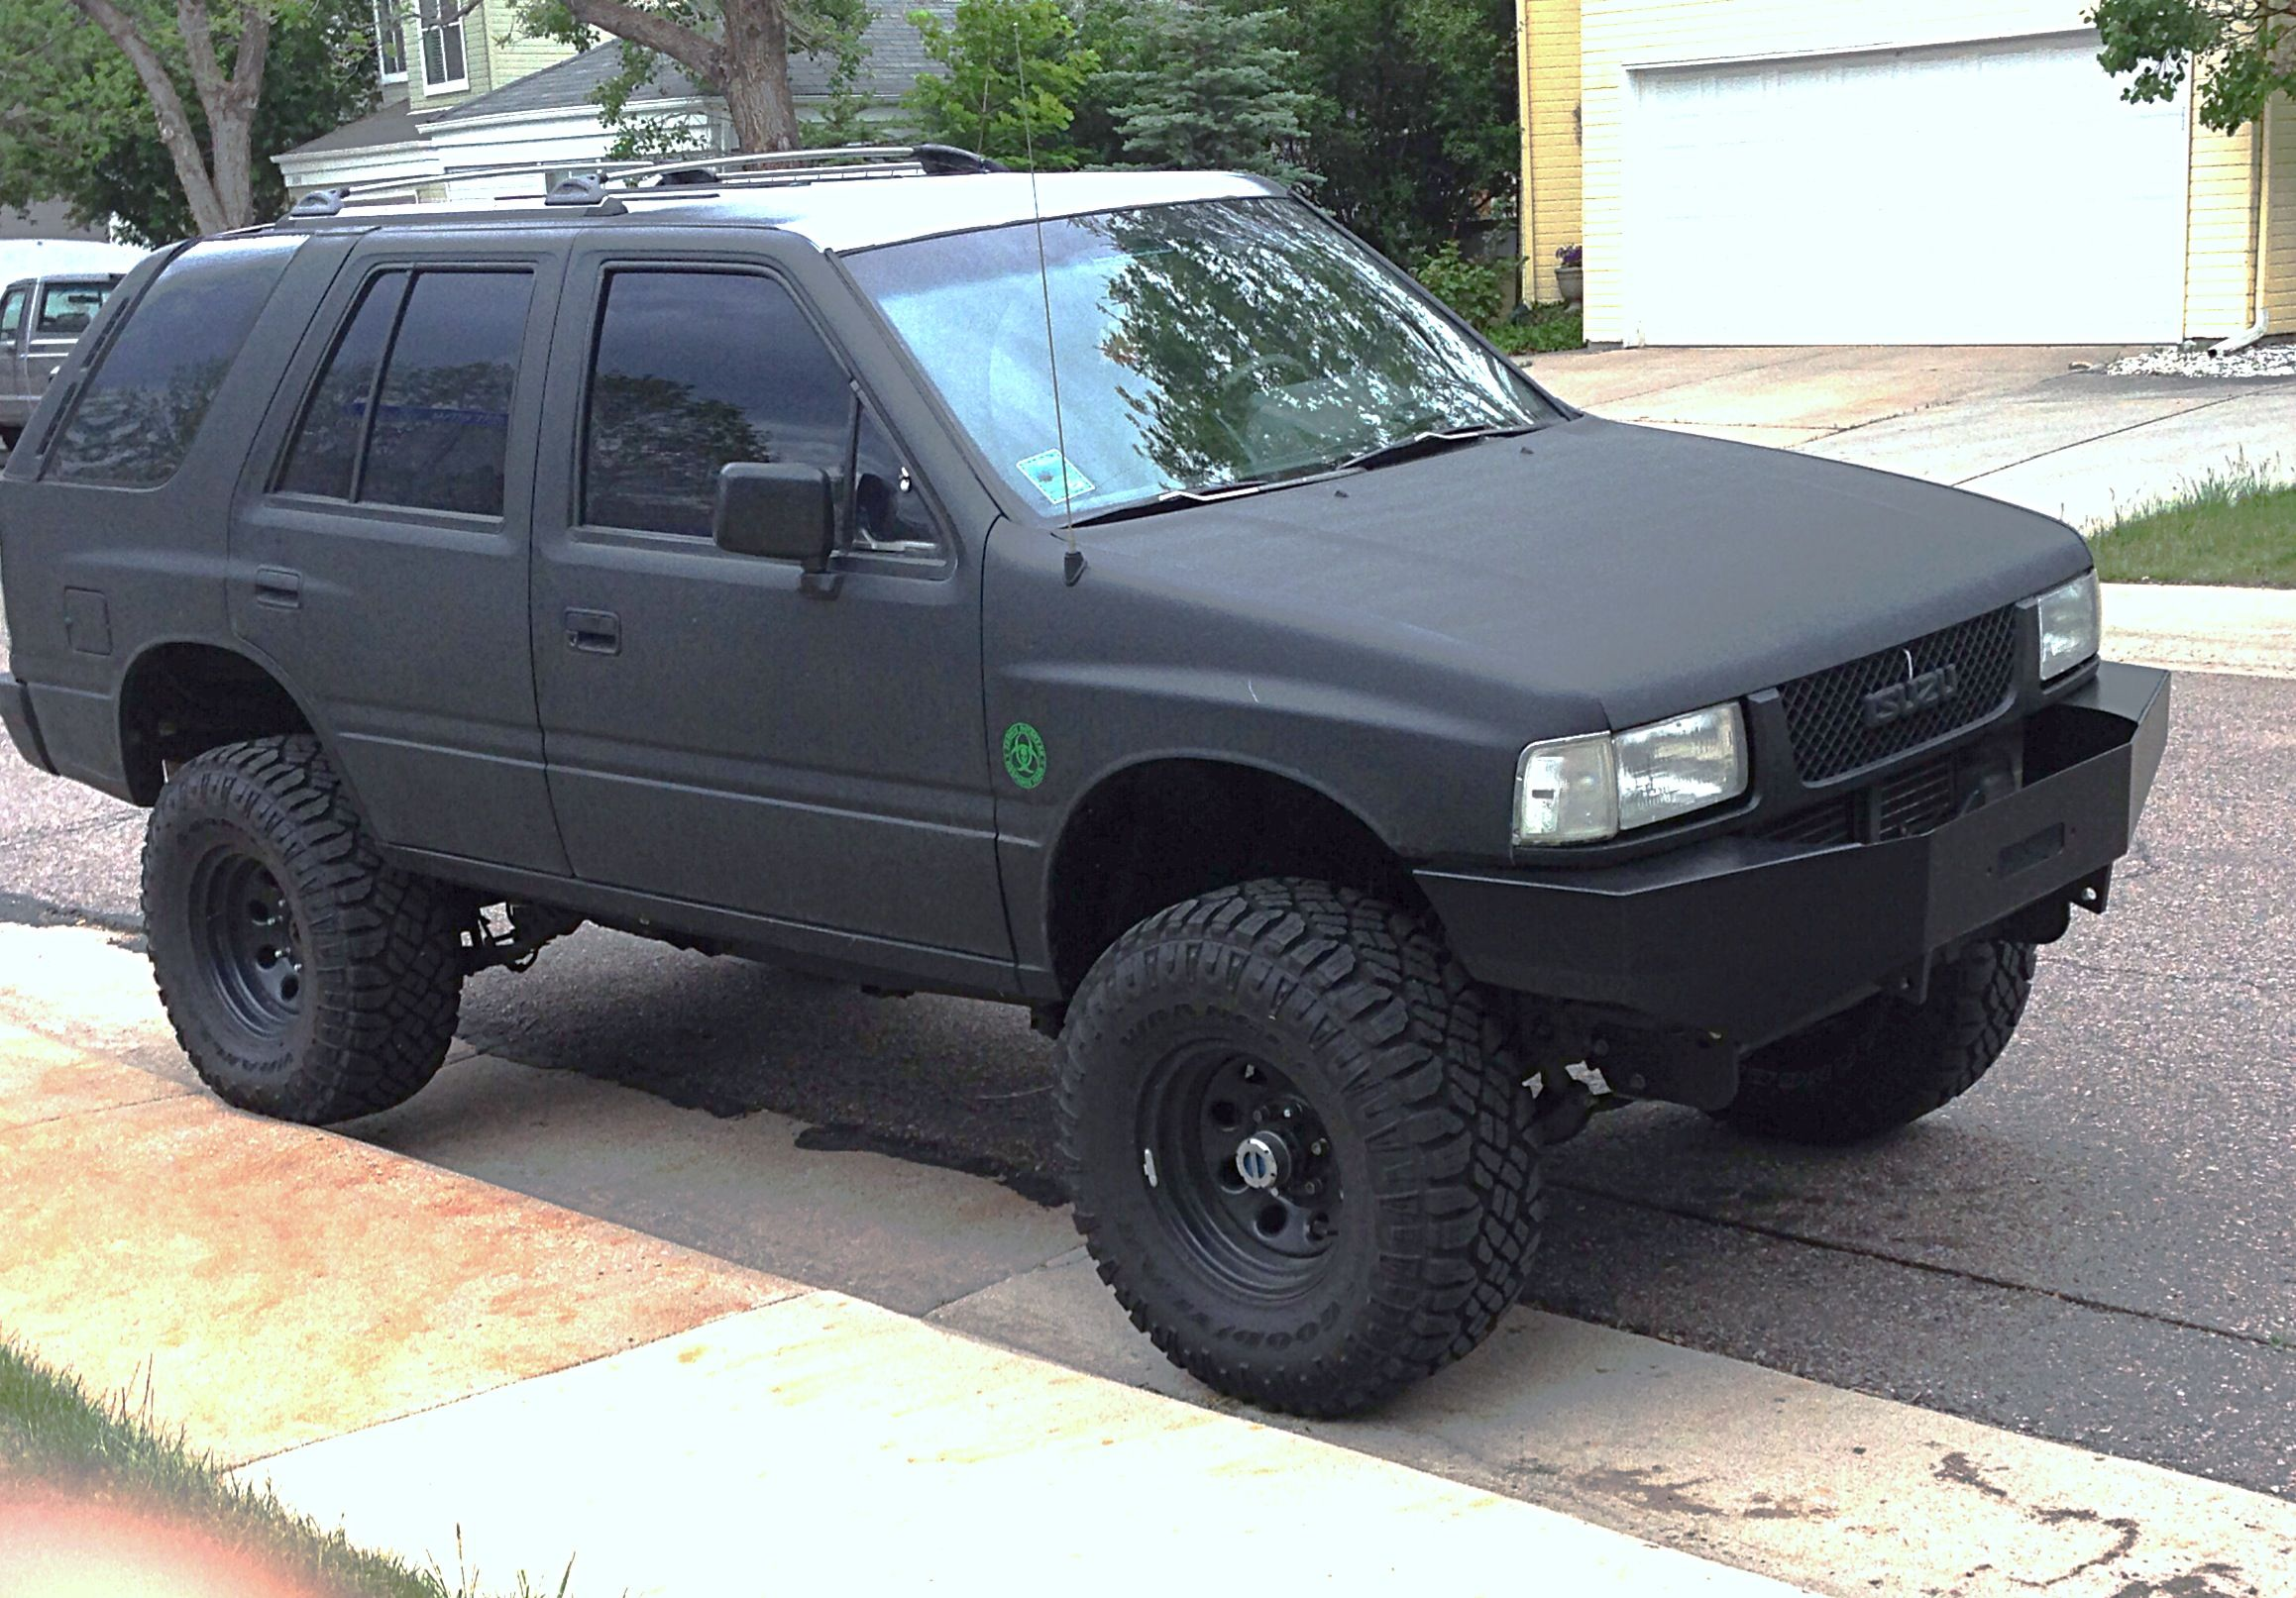 Isuzu Rodeo After I Got My Homemade Bumper Back From Powder Coat Nissan Terrano 4x4 Trucks Nissan Trucks